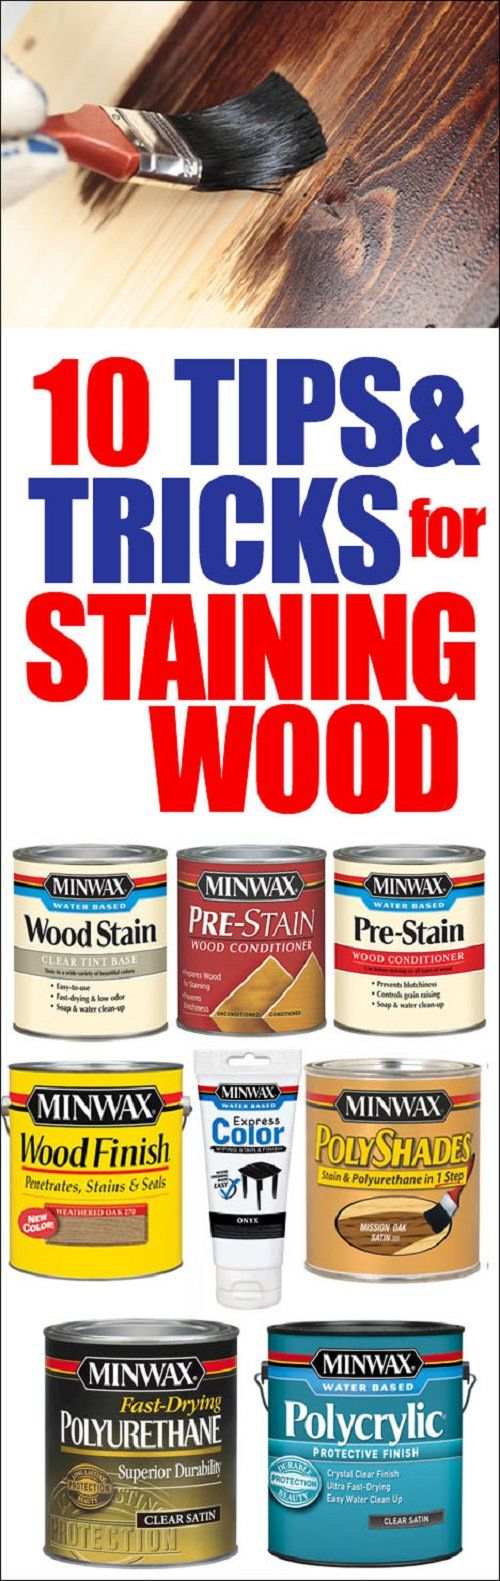 Learn how to stain your unfinished furniture perfectly and correctly with these 10 great tips and tricks for staining wood!